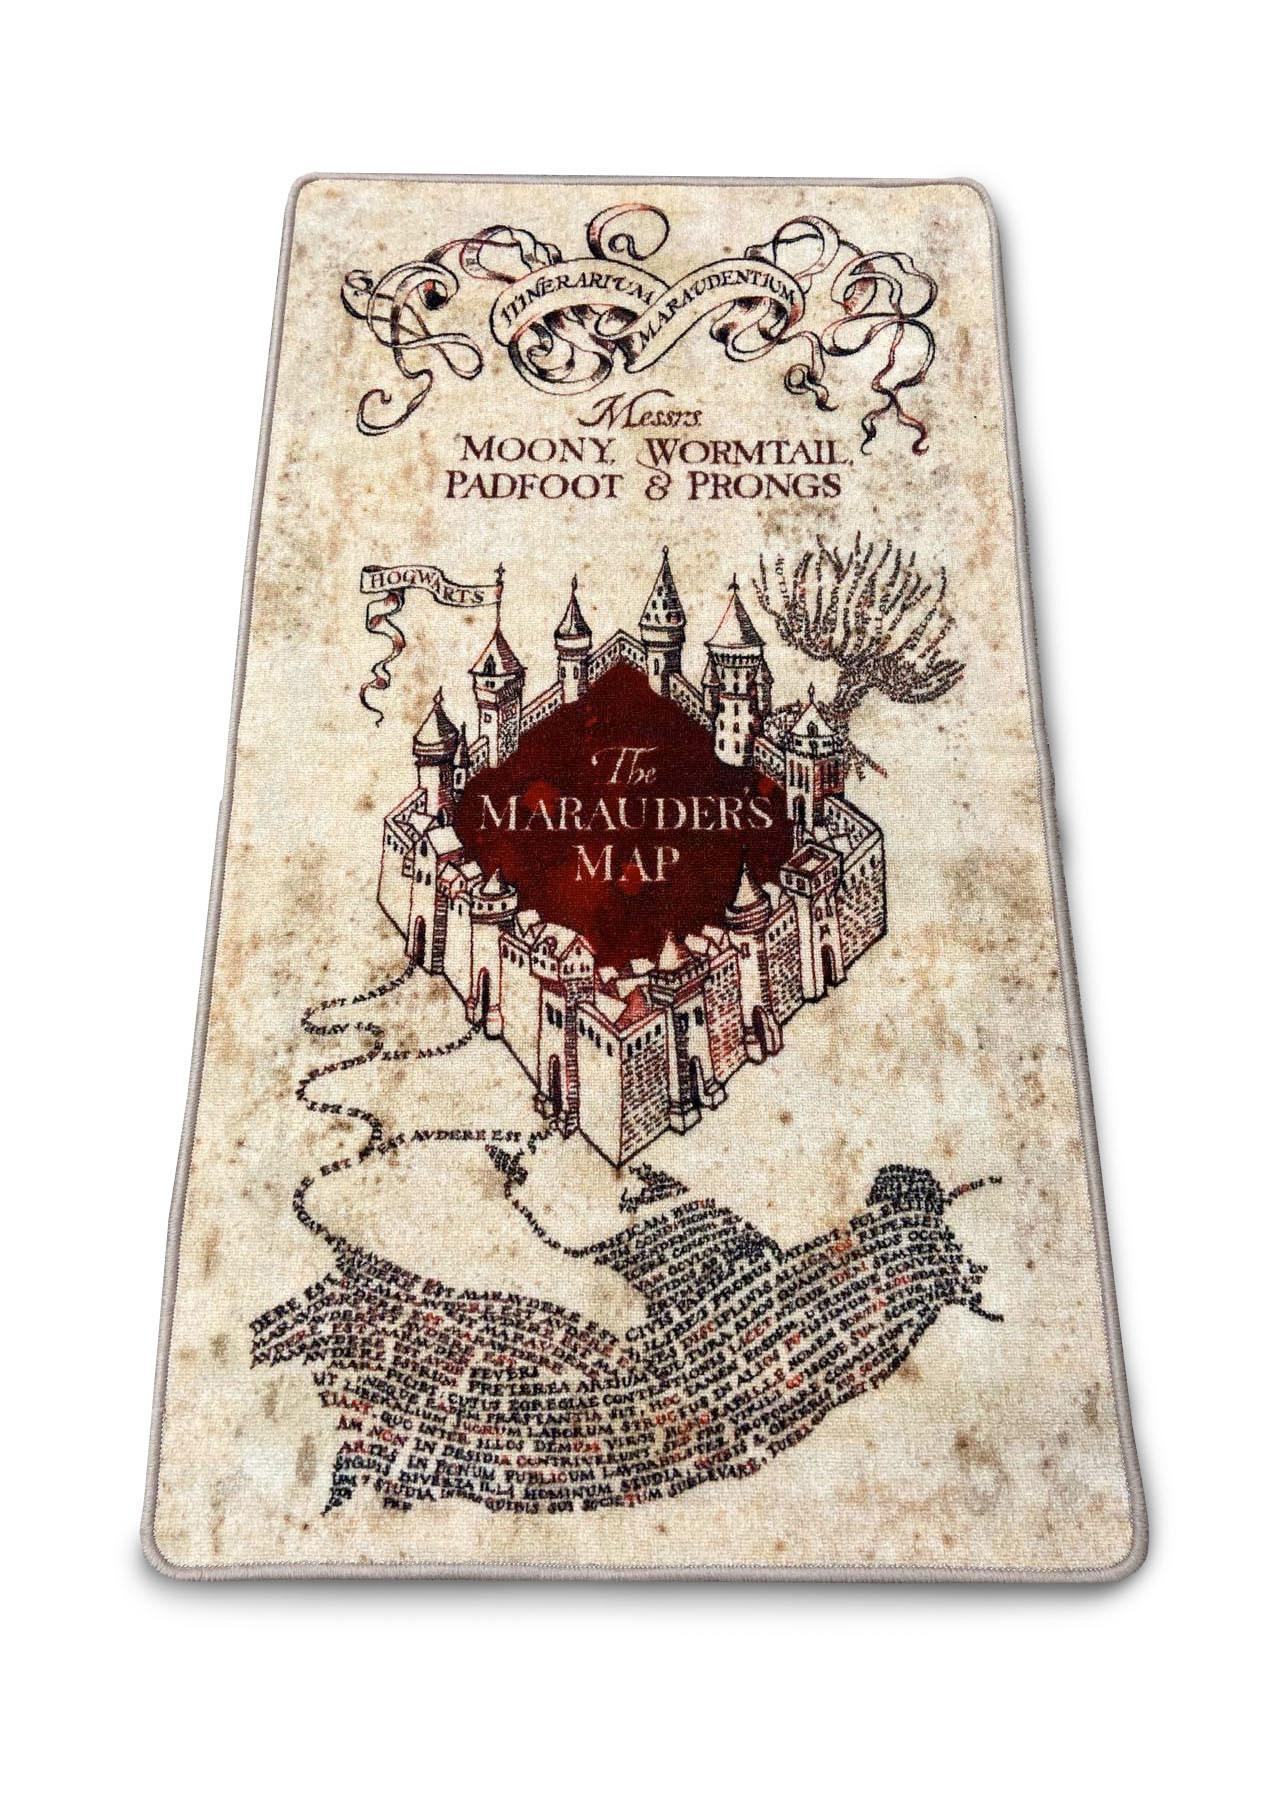 TAPIS CARTE DU MARAUDEUR (76 X 133 cm) - HARRY POTTER - la boutique du sorcier